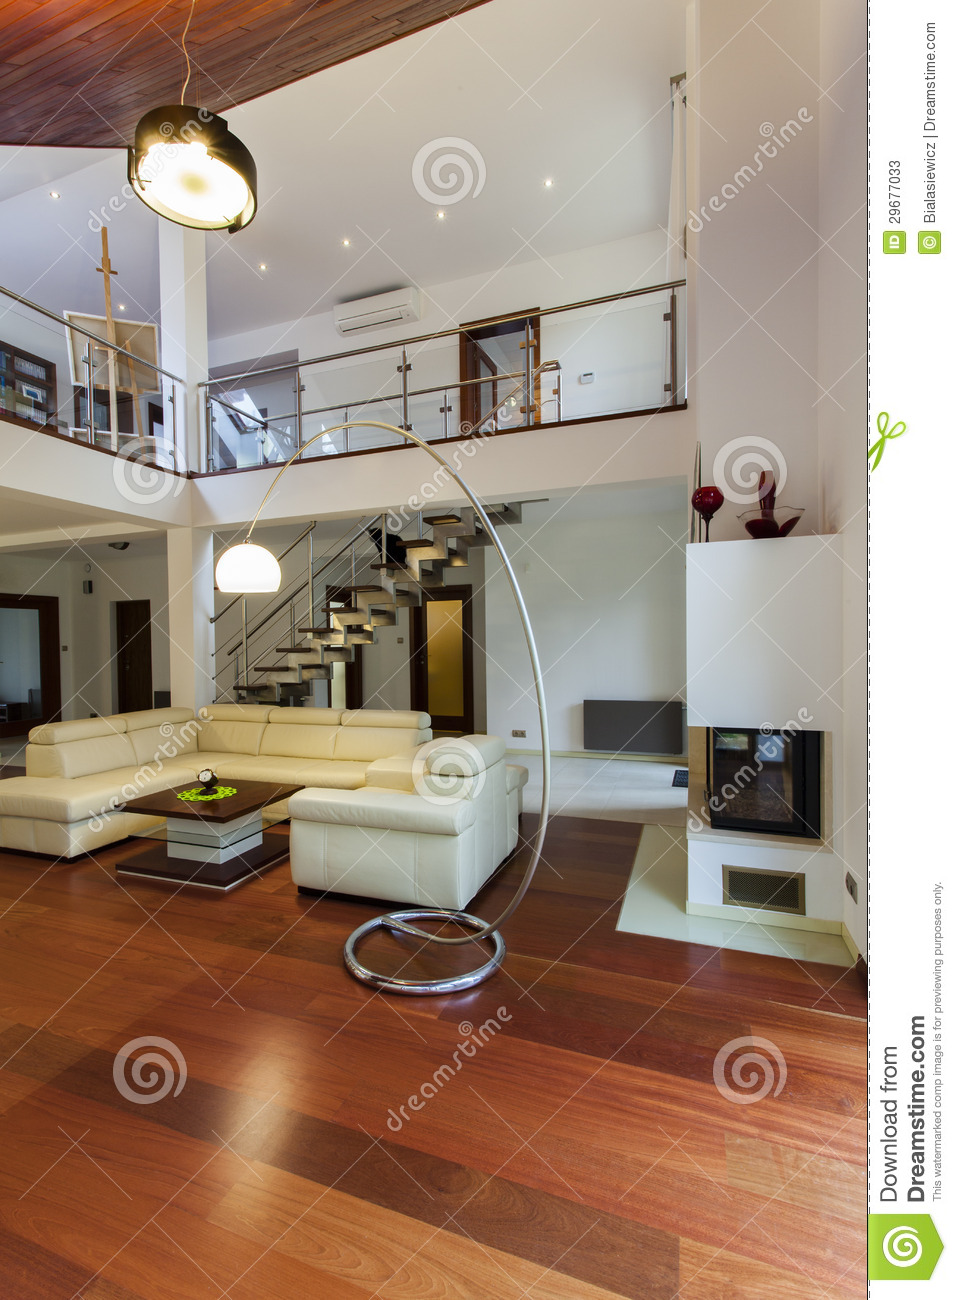 Living Room And Entresol Stock Image Image Of Plain